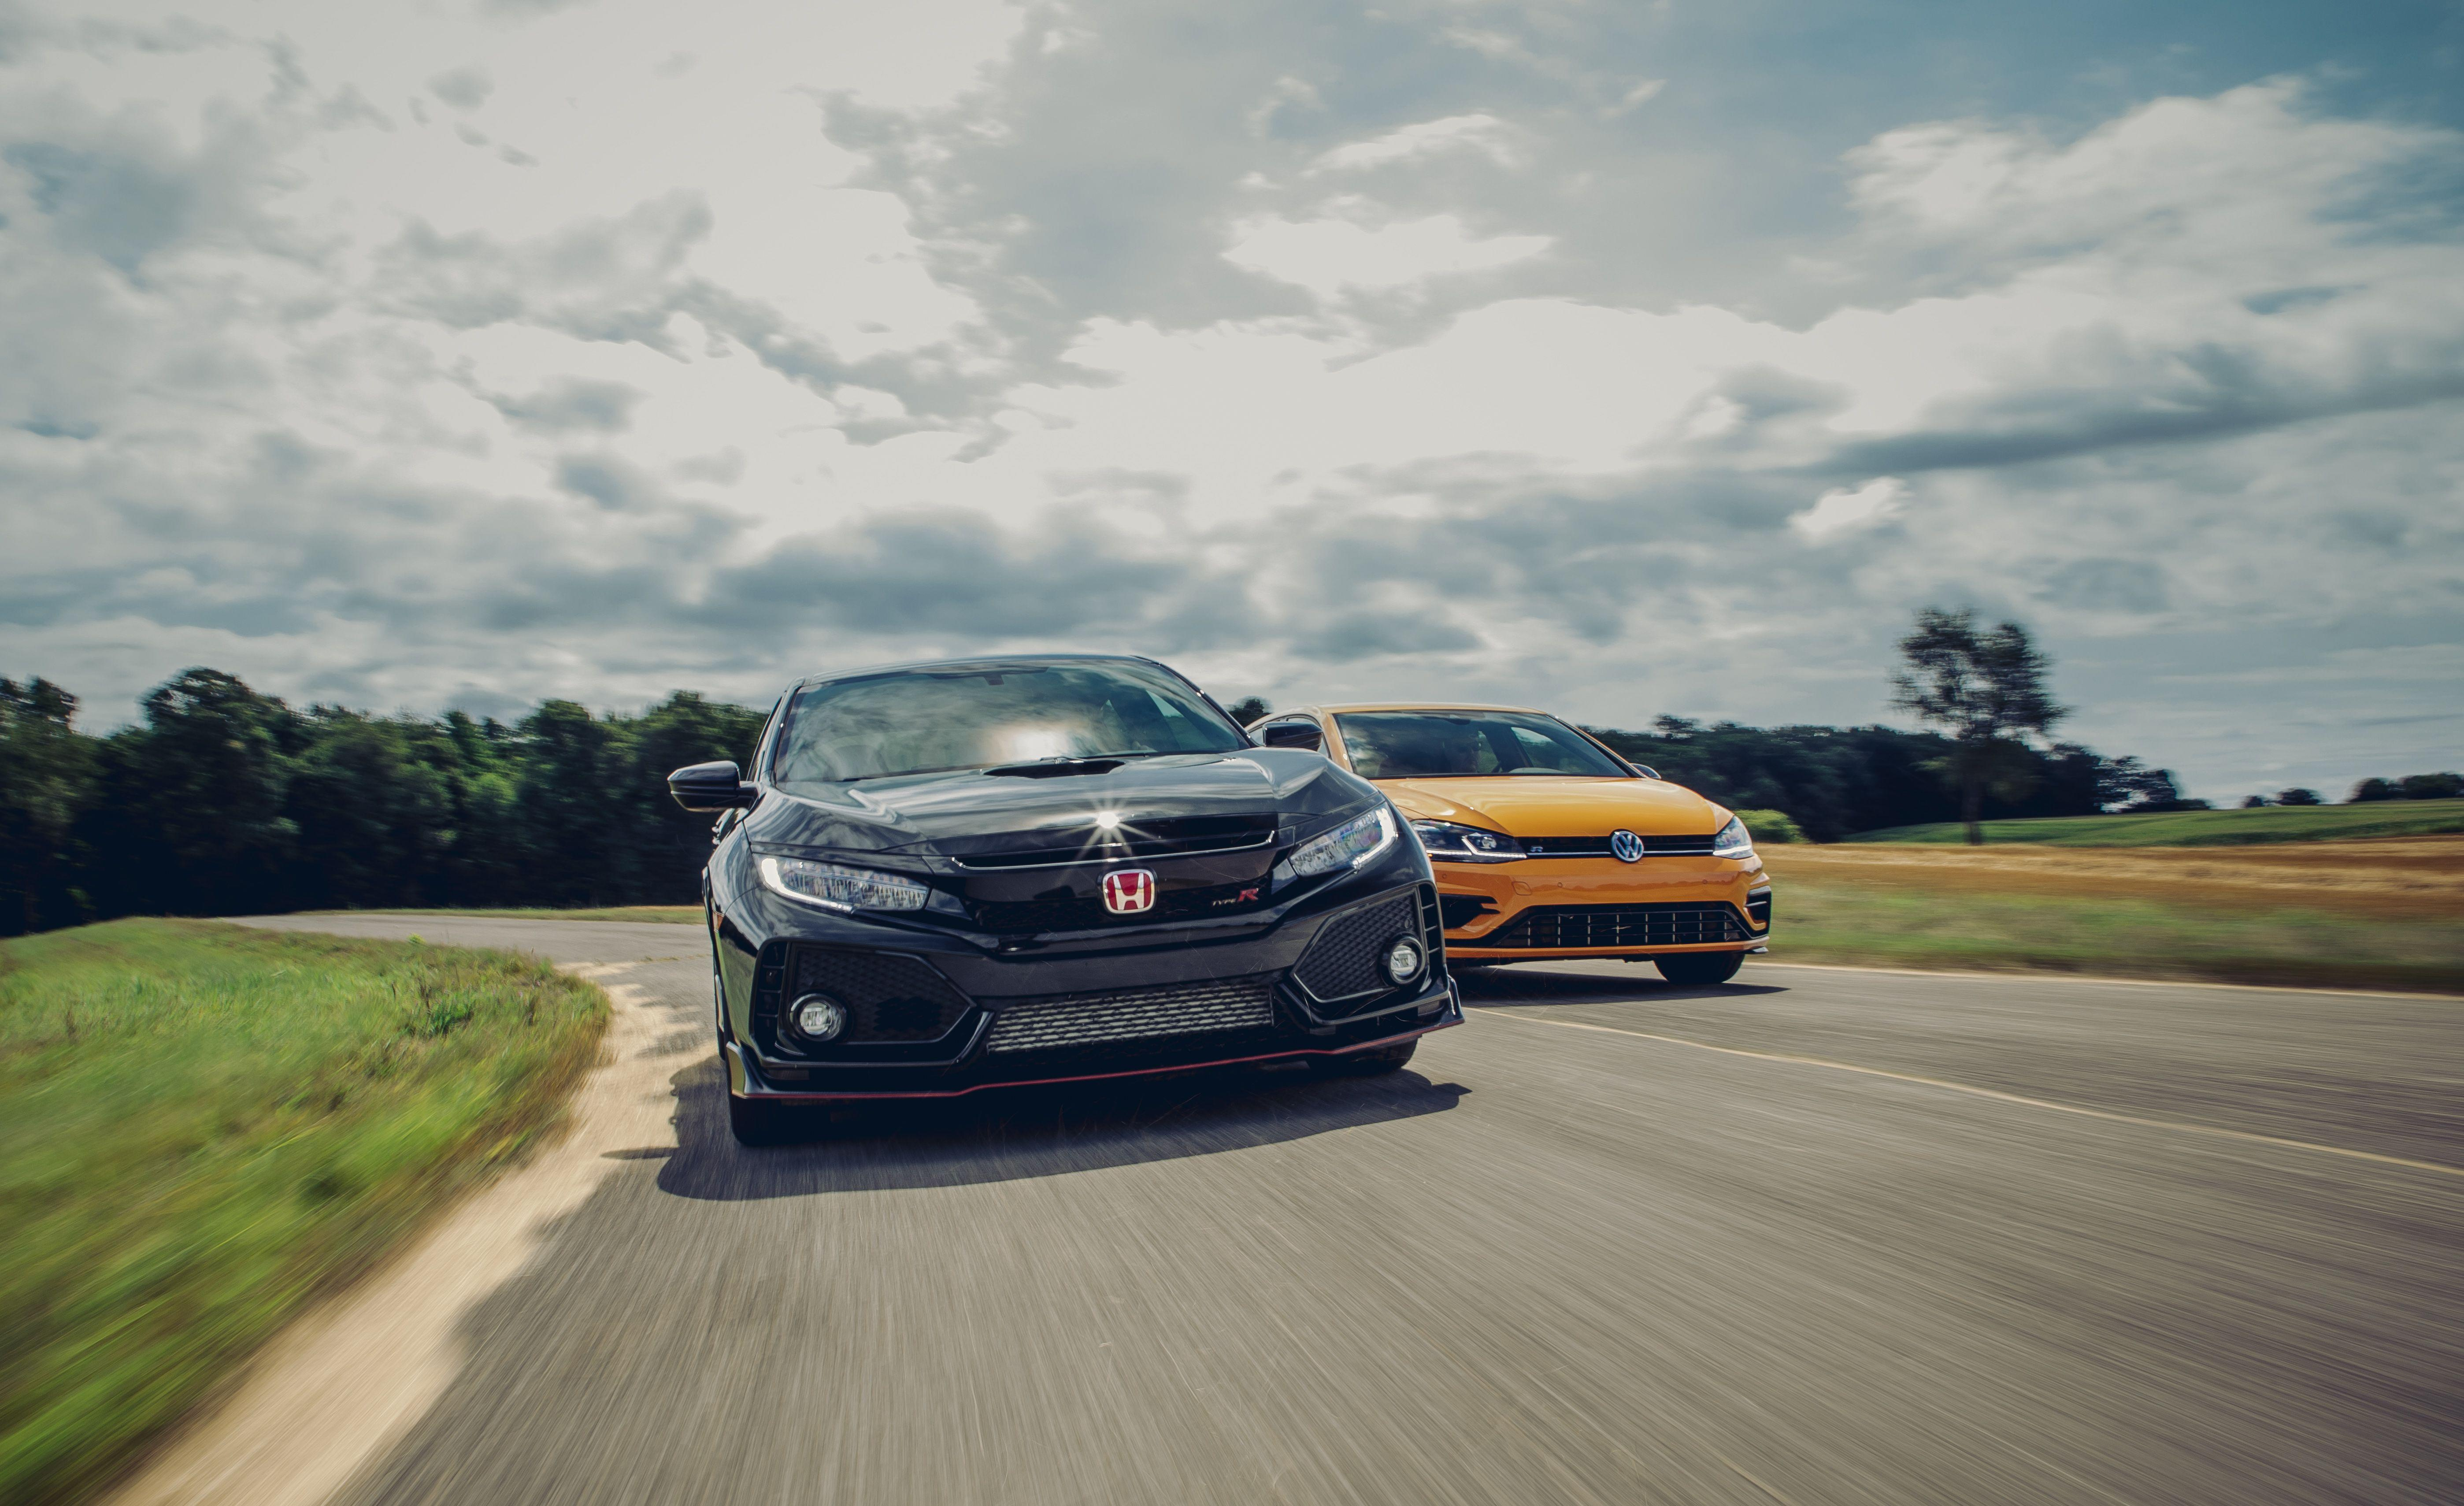 """<p>Volkswagen created the hot-hatch genre in 1976 when it spiced-up a Golf hatchback and named it the GTI. There have been many competitors since, but the 288-hp <a href=""""https://www.caranddriver.com/volkswagen/golf-r"""" rel=""""nofollow noopener"""" target=""""_blank"""" data-ylk=""""slk:2019 Volkswagen Golf R"""" class=""""link rapid-noclick-resp"""">2019 Volkswagen Golf R</a> and 306-hp <a href=""""https://www.caranddriver.com/honda/civic-type-r"""" rel=""""nofollow noopener"""" target=""""_blank"""" data-ylk=""""slk:2019 Honda Civic Type R"""" class=""""link rapid-noclick-resp"""">2019 Honda Civic Type R</a> take that time-tested formula to another level as the most potent of their kind currently on sale in the United States, with lofty prices that reflect their added capabilities. Read the full story <a href=""""https://www.caranddriver.com/reviews/comparison-test/a28689556/2019-honda-civic-type-r-vs-2019-vw-golf-r/"""" rel=""""nofollow noopener"""" target=""""_blank"""" data-ylk=""""slk:here"""" class=""""link rapid-noclick-resp"""">here</a>.</p>"""